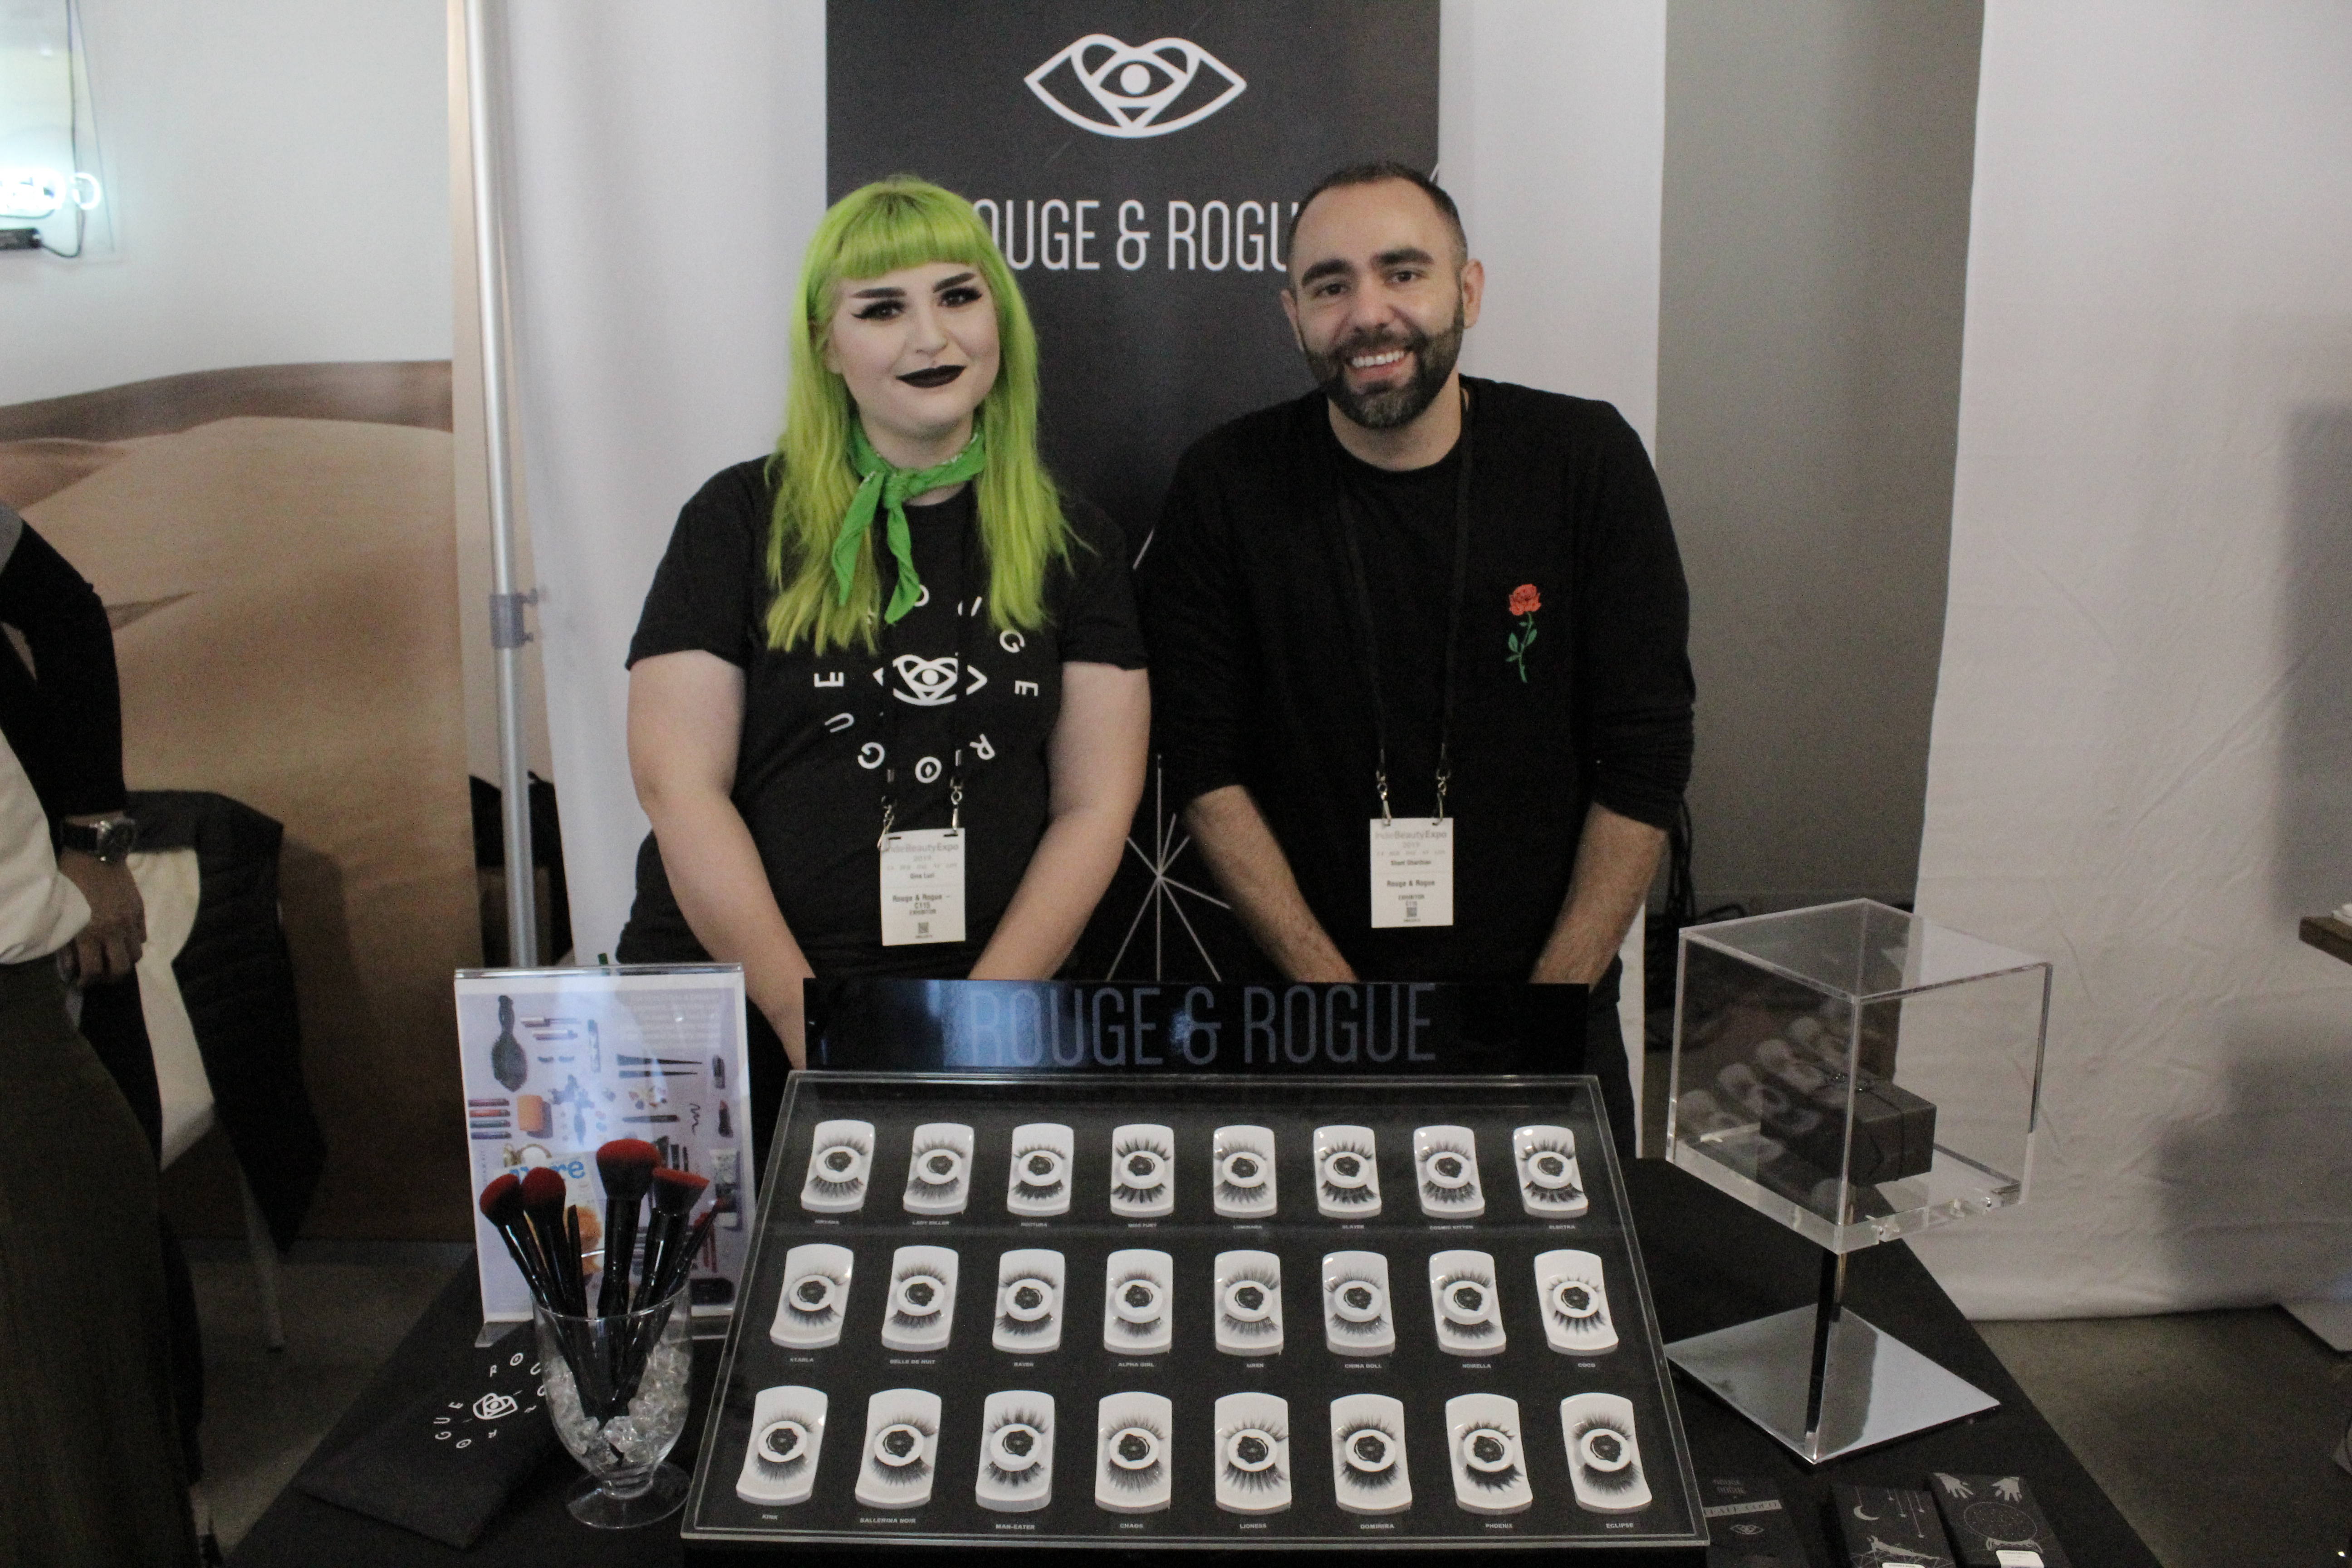 Rouge and Rogue at Indie Beauty Expo